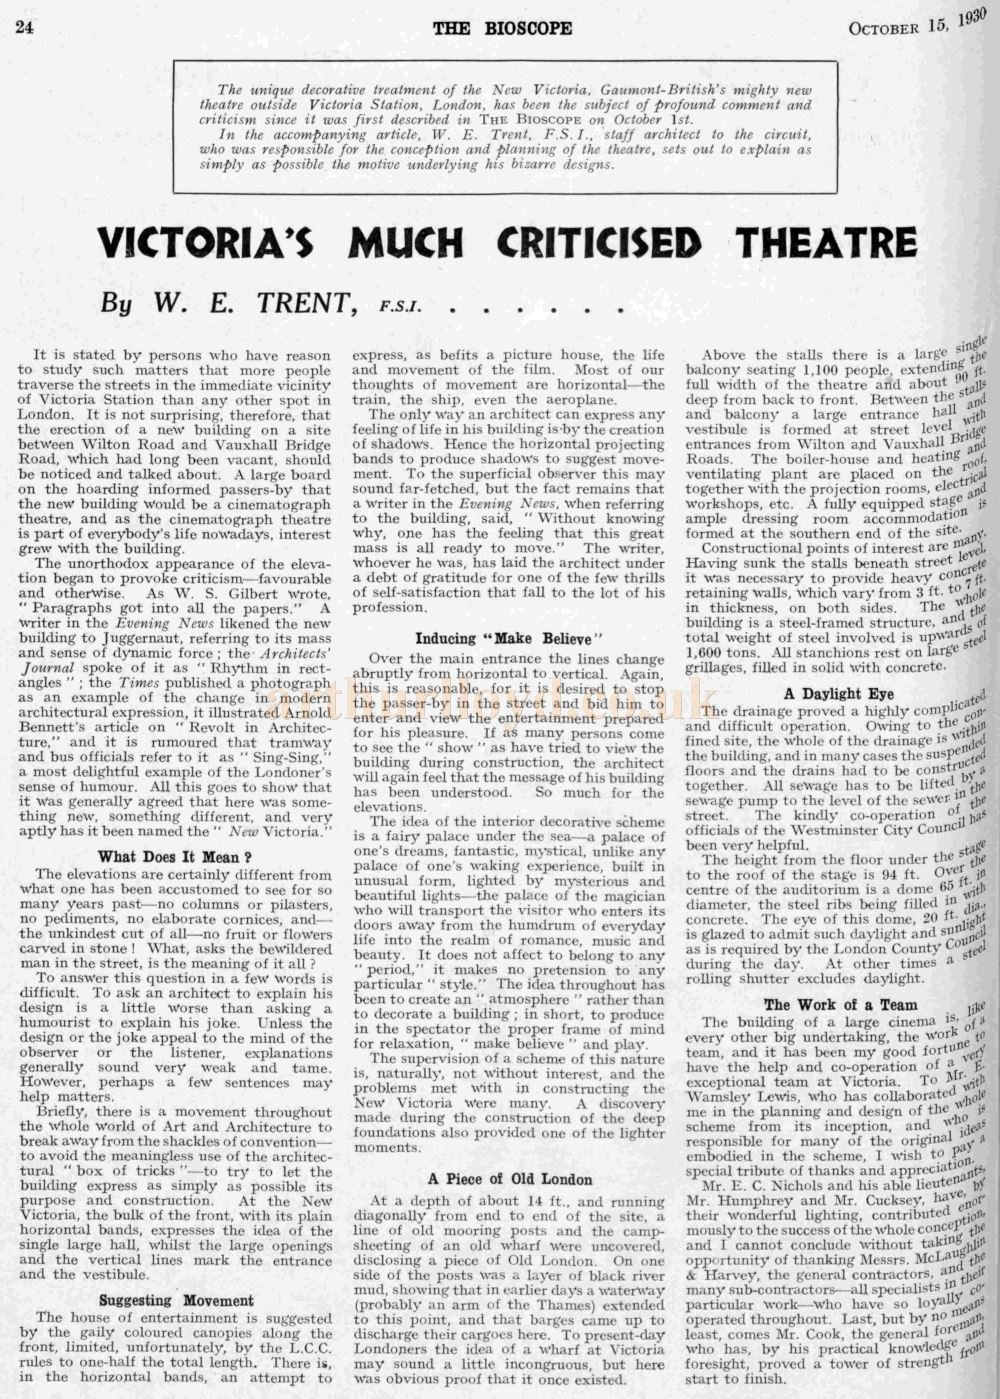 W. E. Trent explains his vision for the New Victoria Theatre - From The Bioscope, 15th of October 1930.